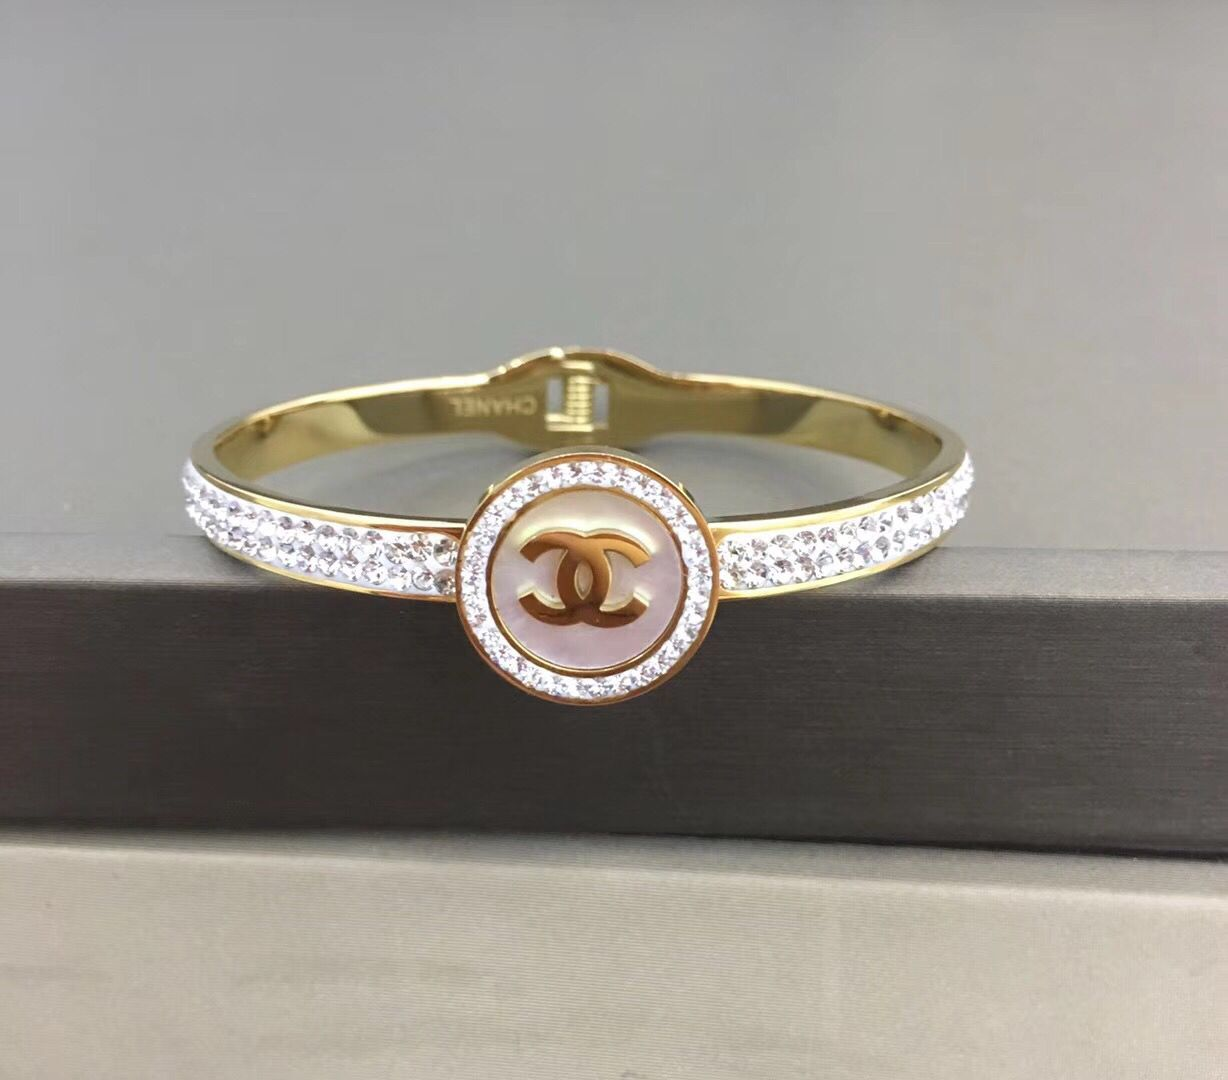 a06a6d8aed97 Chanel bracelet № 2 · PvlMagazine · Online Store Powered by Storenvy